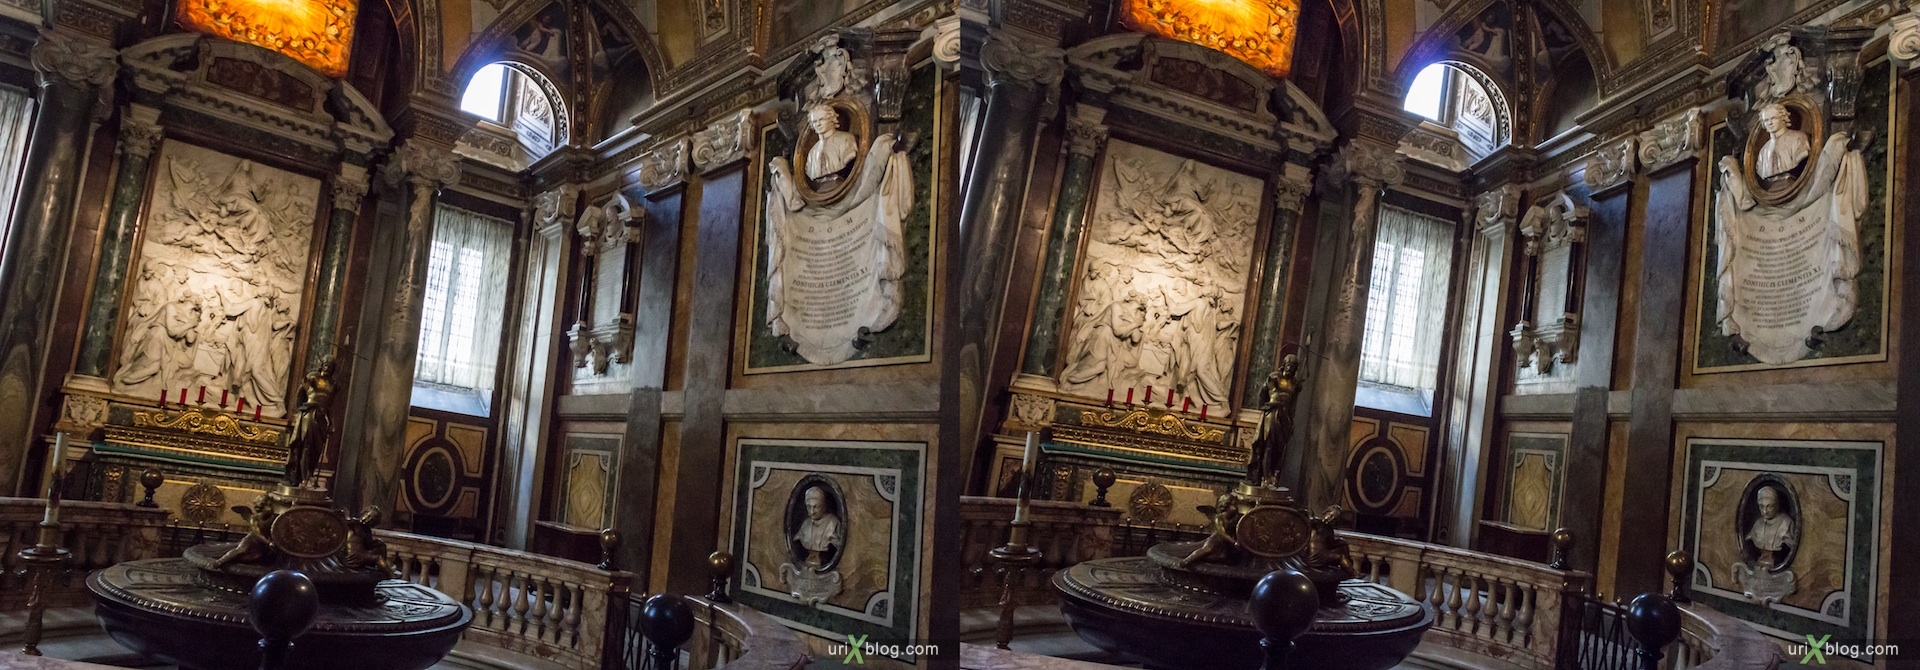 2012, basilica di Santa Maria Maggiore, church, Rome, Italy, cathedral, monastery, Christianity, Catholicism, 3D, stereo pair, cross-eyed, crossview, cross view stereo pair